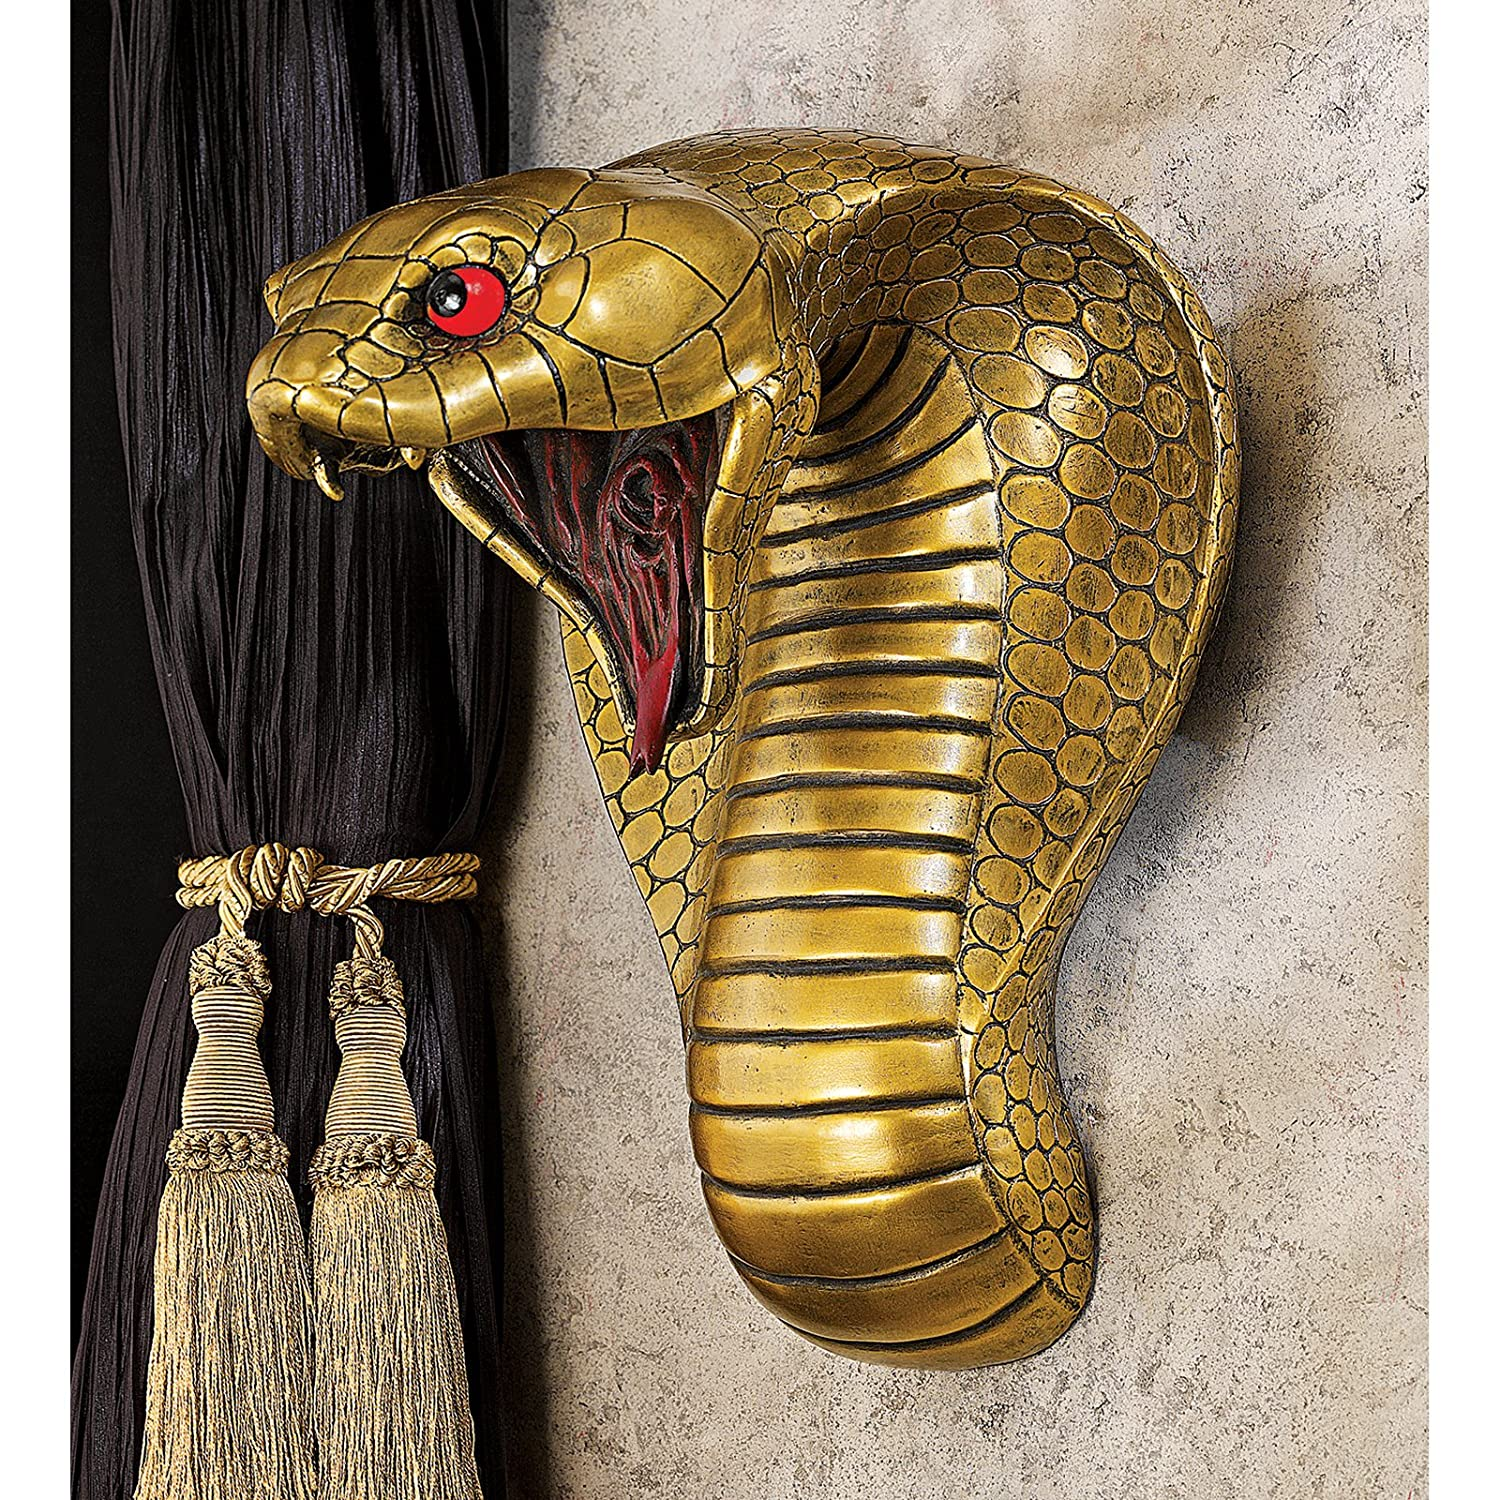 Design Toscano Wall Mounted Egyptian Cobra Goddess Towel Ring Wall Sculpture CL96795 recommend